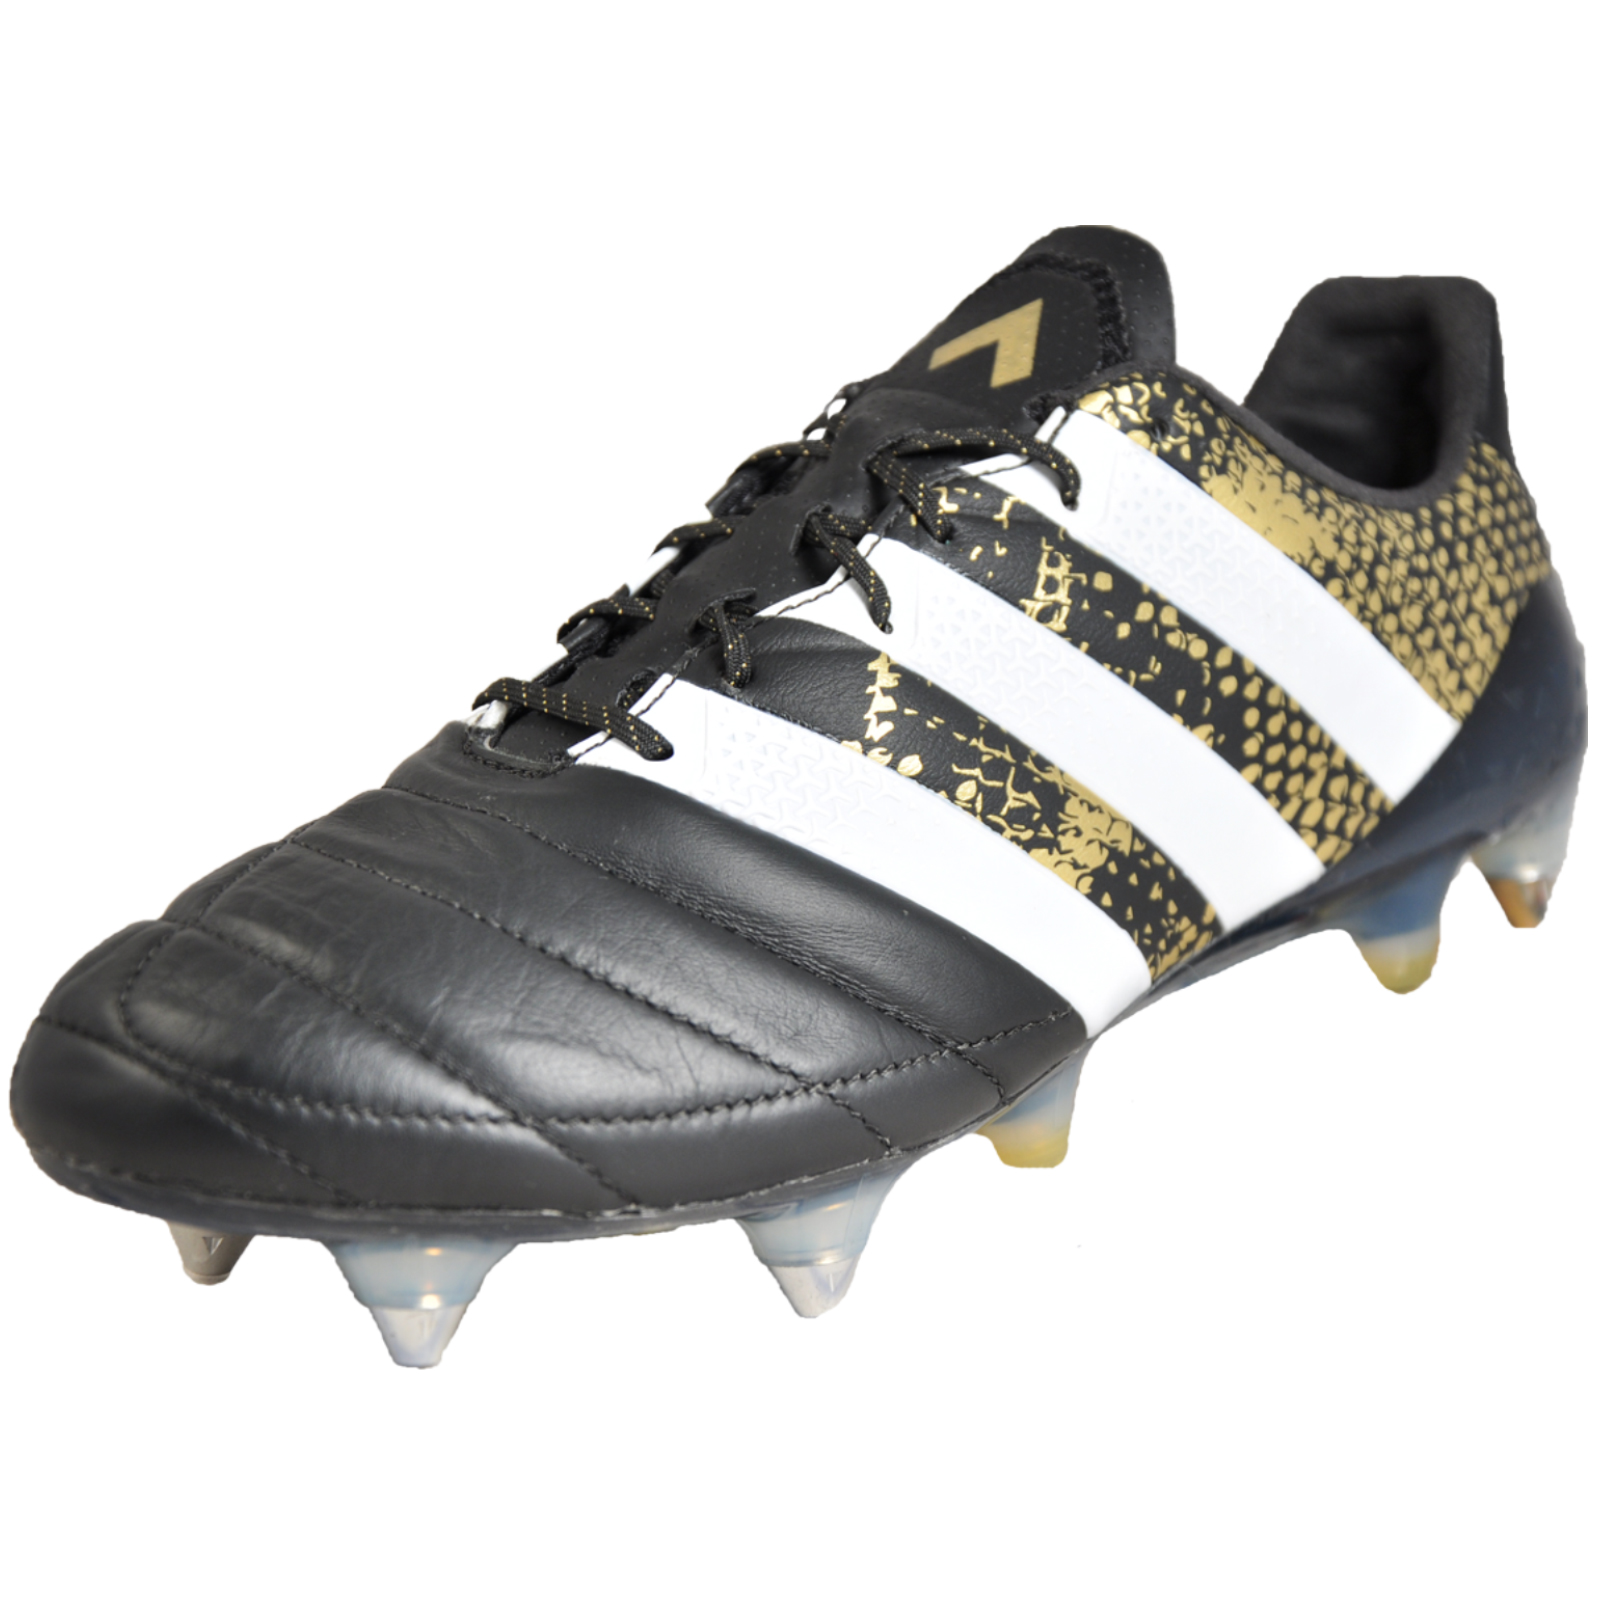 wholesale dealer 0beda 2bf05 Details about Adidas Ace 16.1 SG Men's Pro Leather Football Boots Black